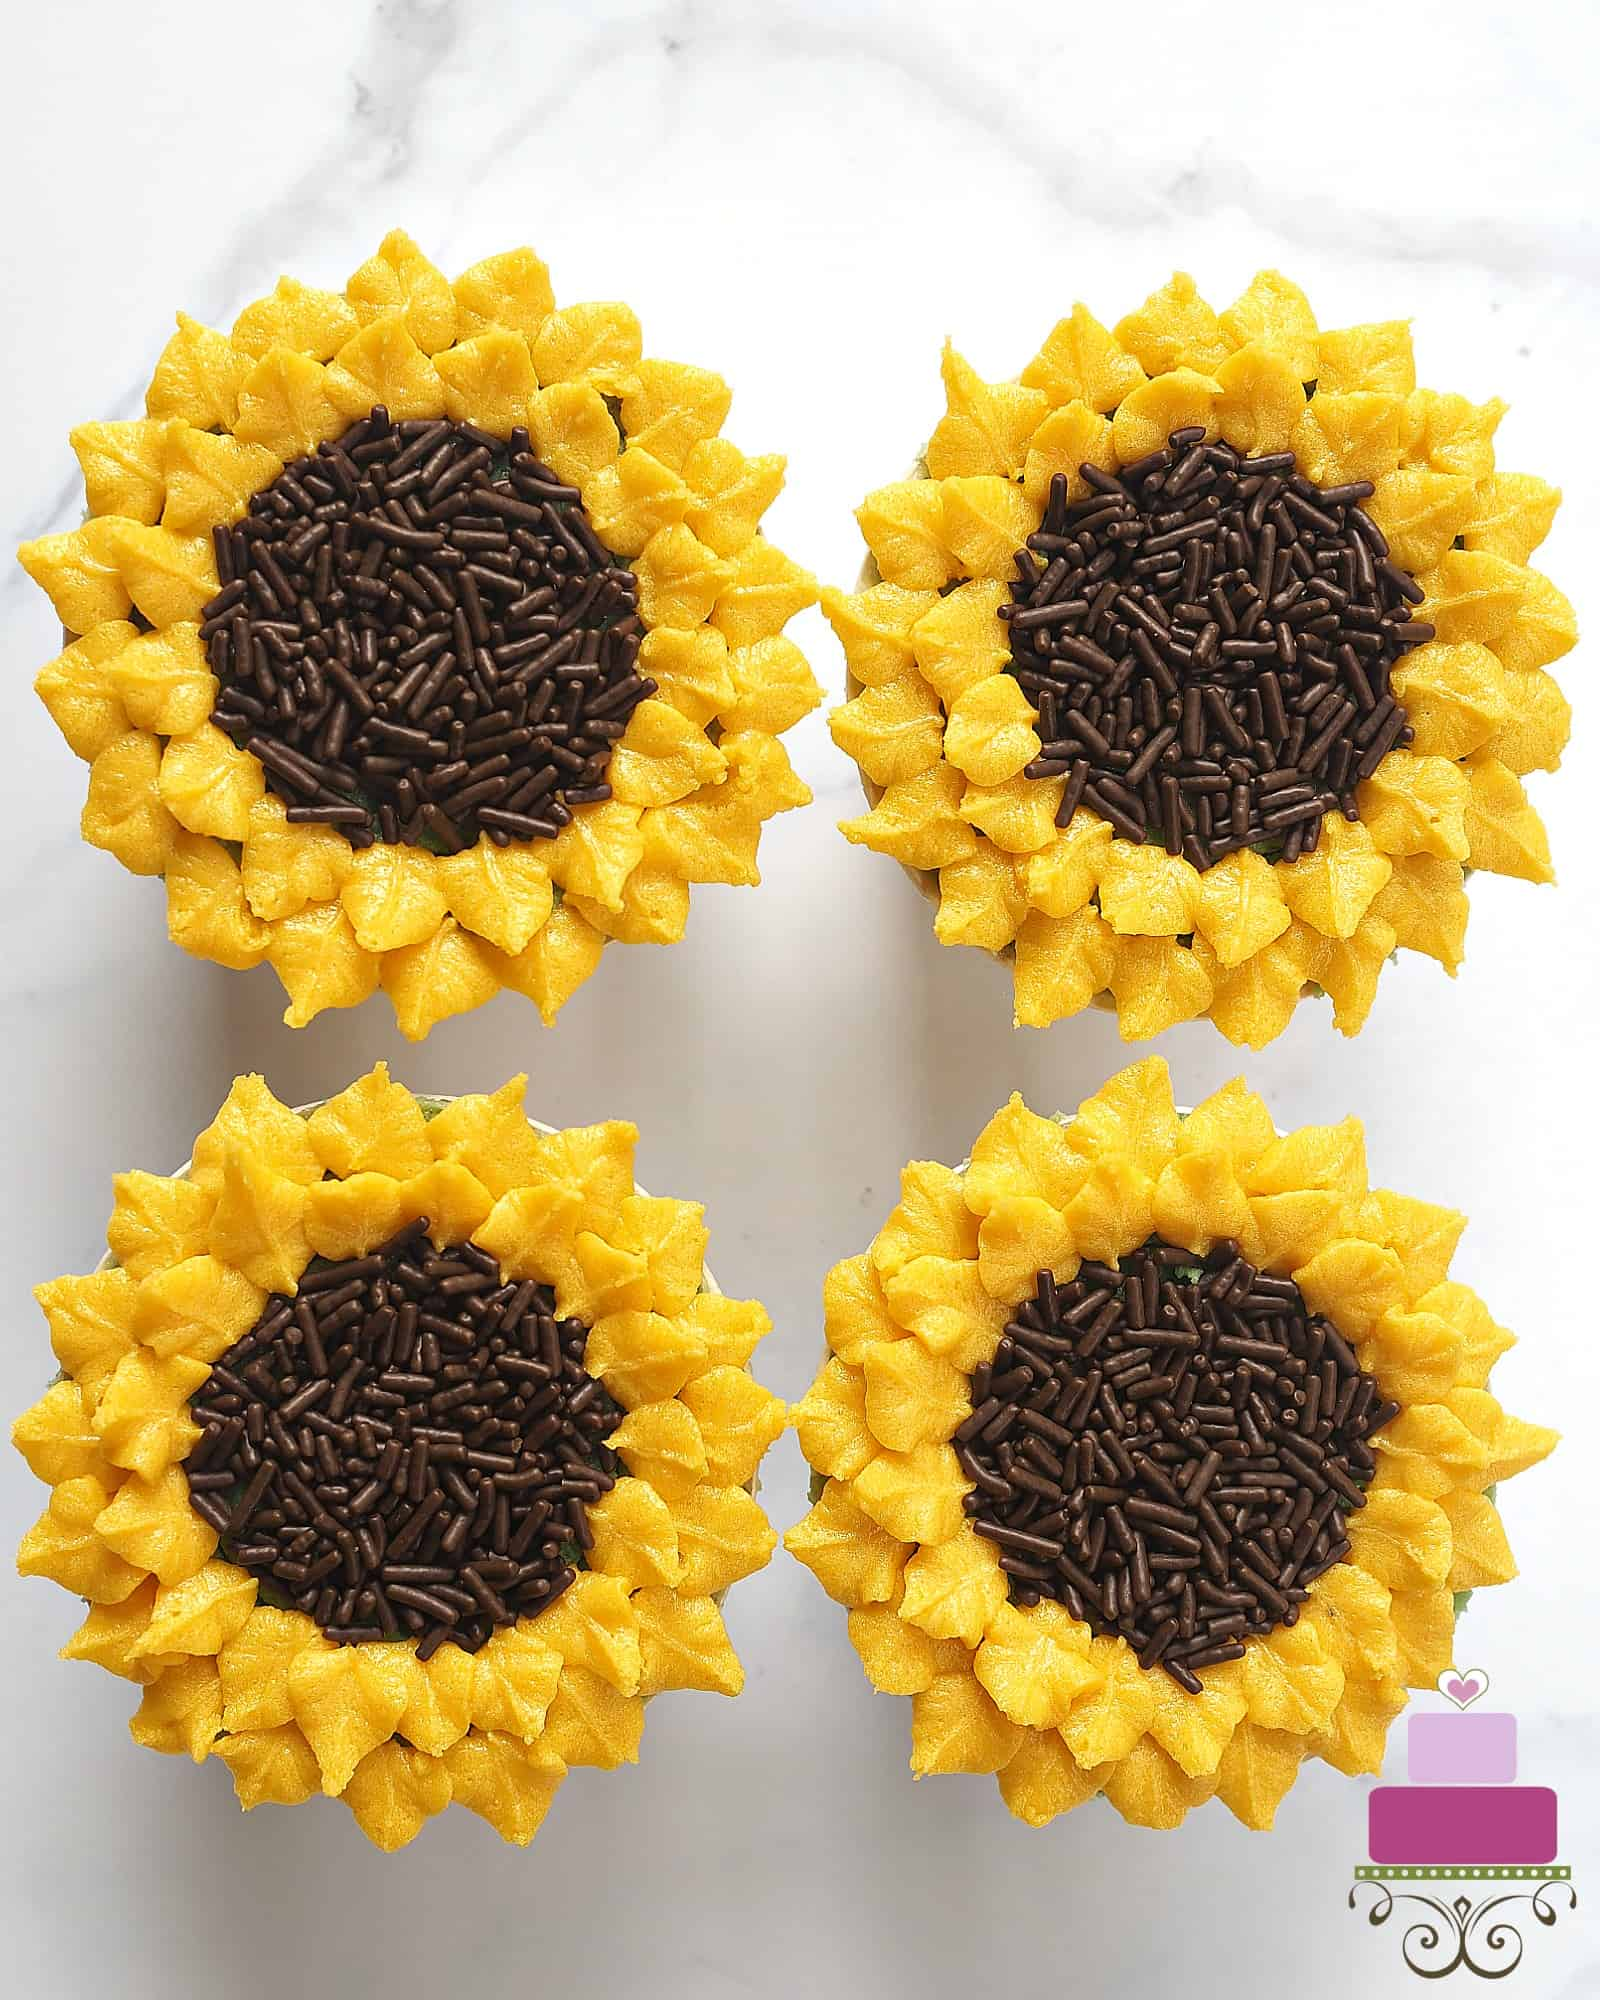 4 sunflower cupcakes